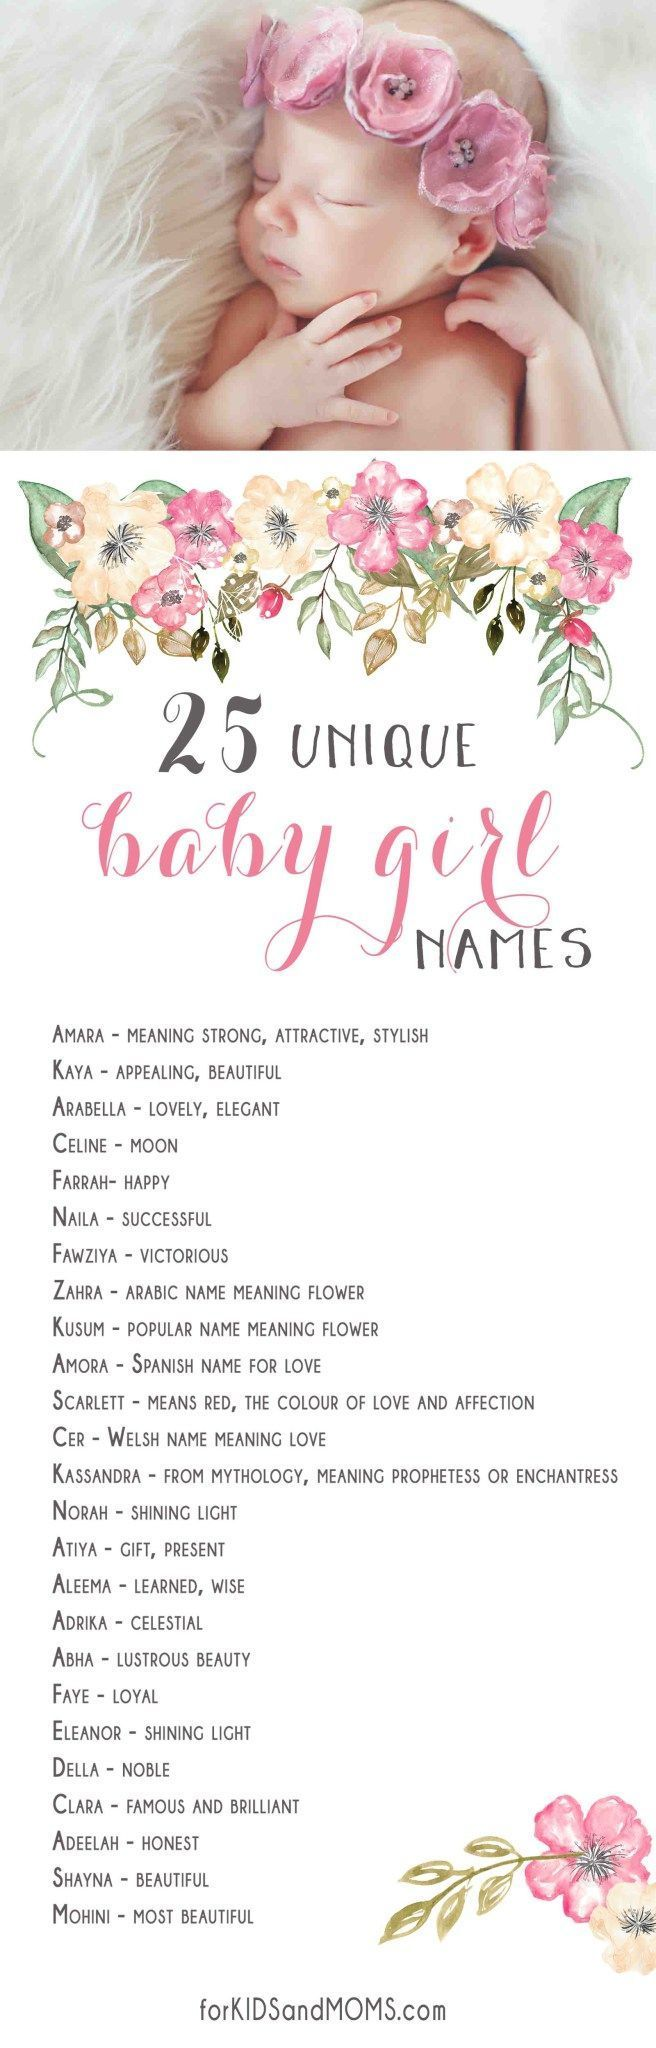 25 Unique Baby Girl Names and Meanings List http://forkidsandmoms.com